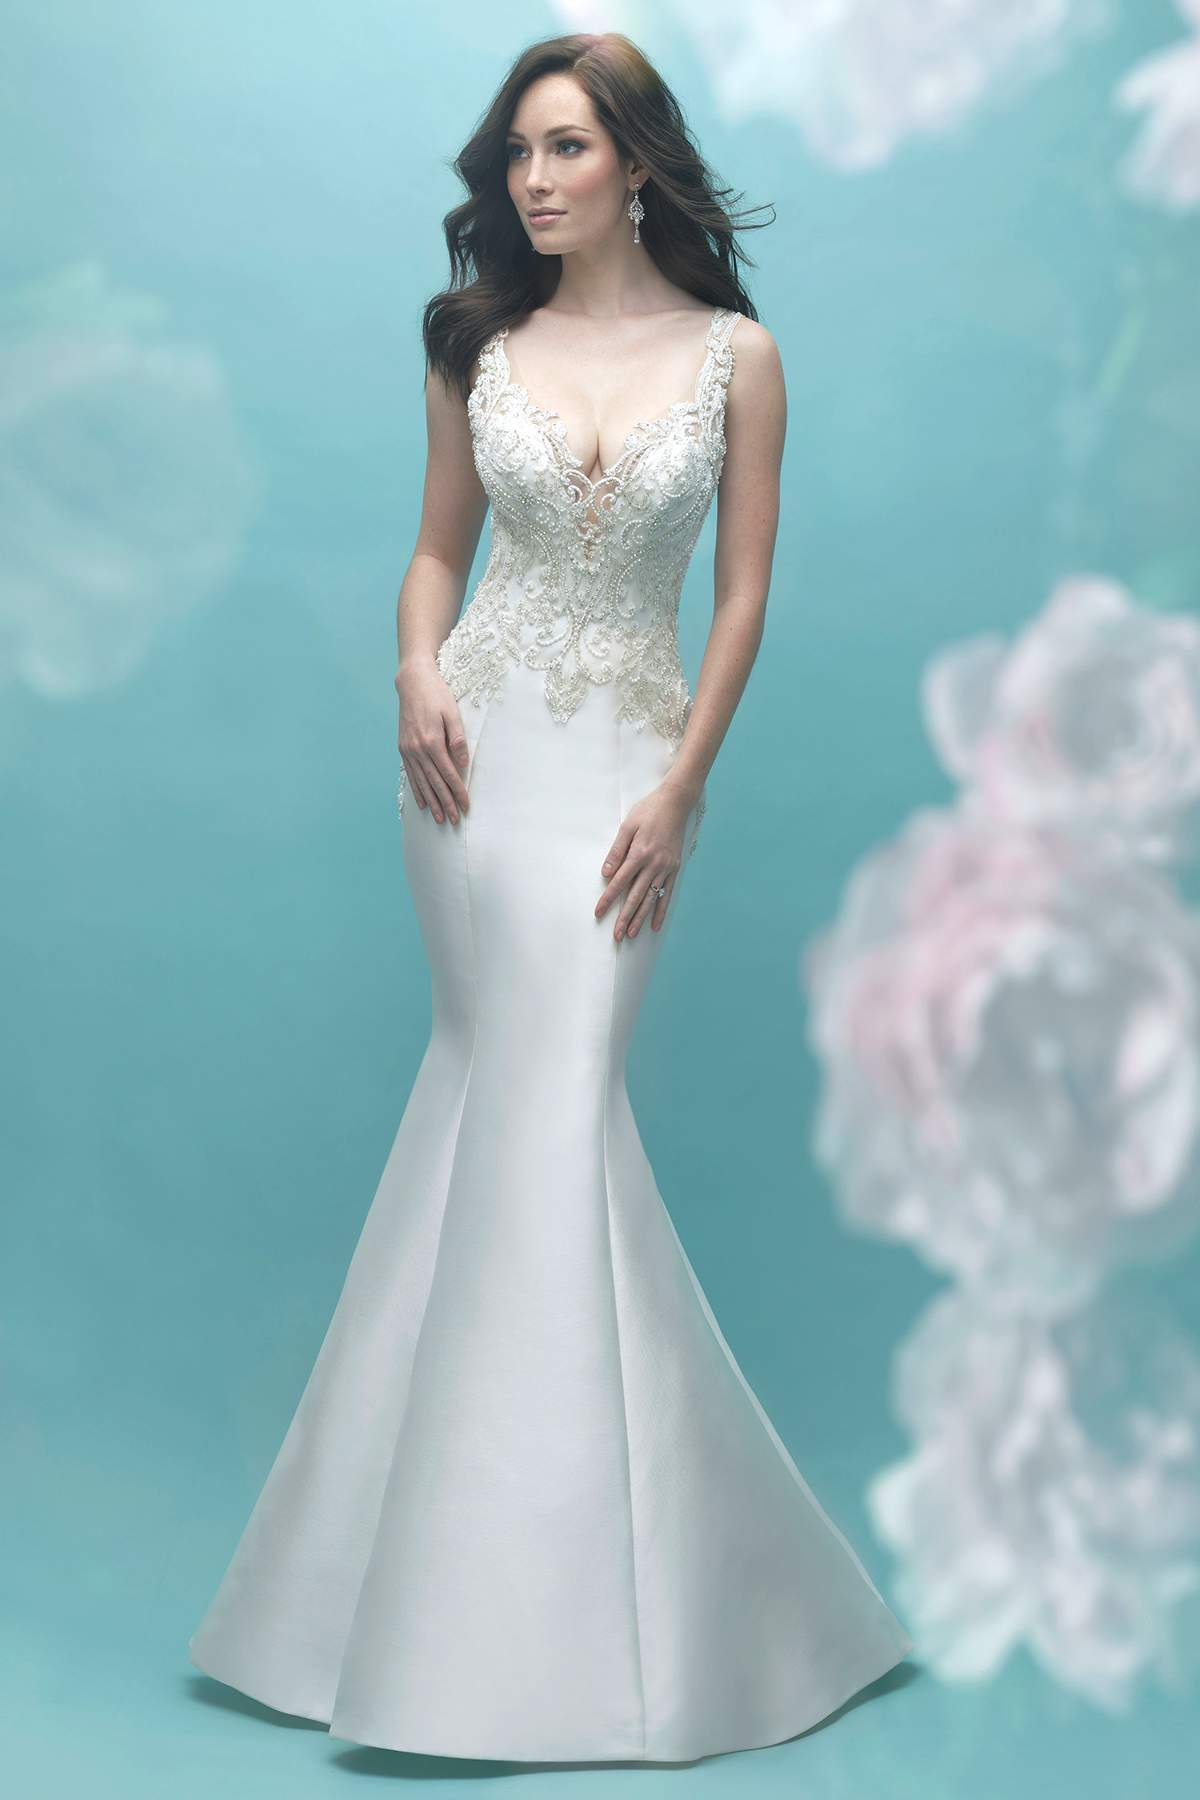 Style 9465 by Allure Bridals - Find Your Dream Dress